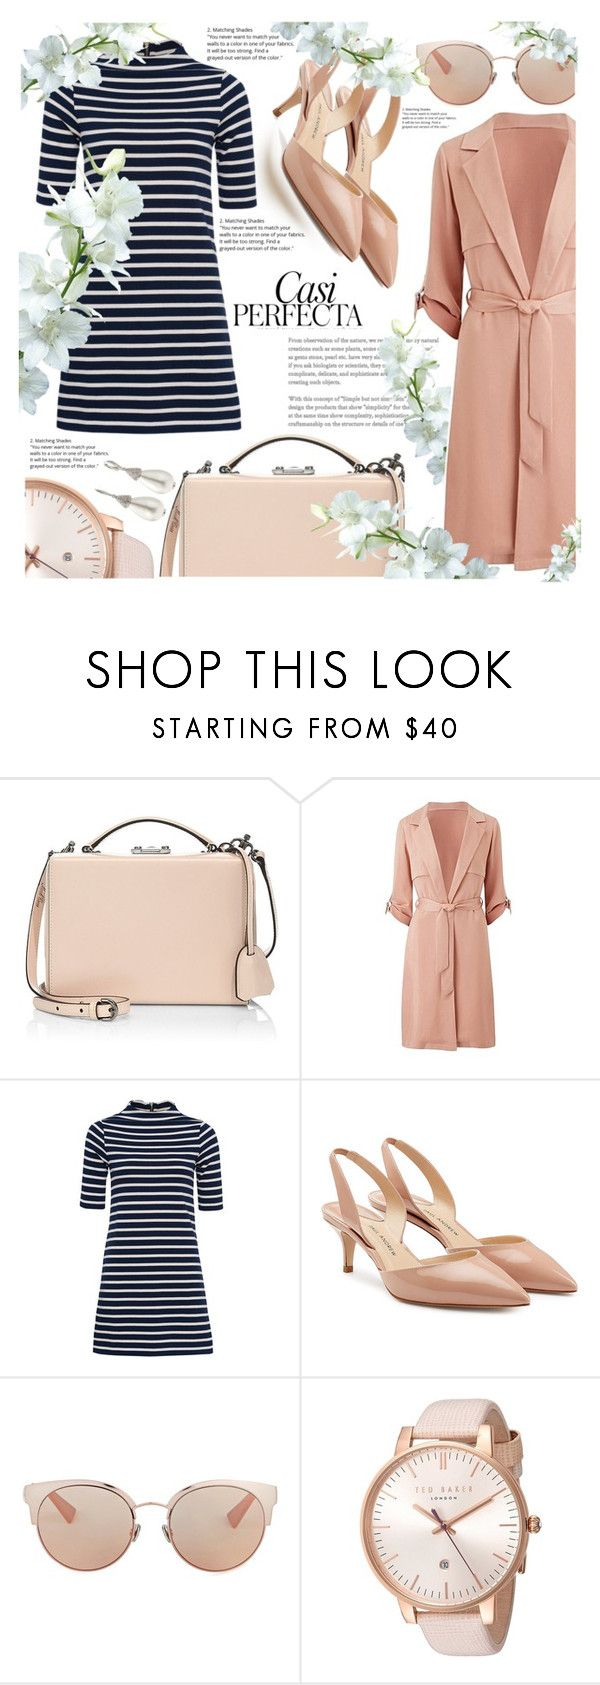 """#64"" by antrum ❤ liked on Polyvore featuring Mark Cross, French Connection, Paul Andrew, Christian Dior, Ted Baker, Oscar de la Renta and Whiteley"